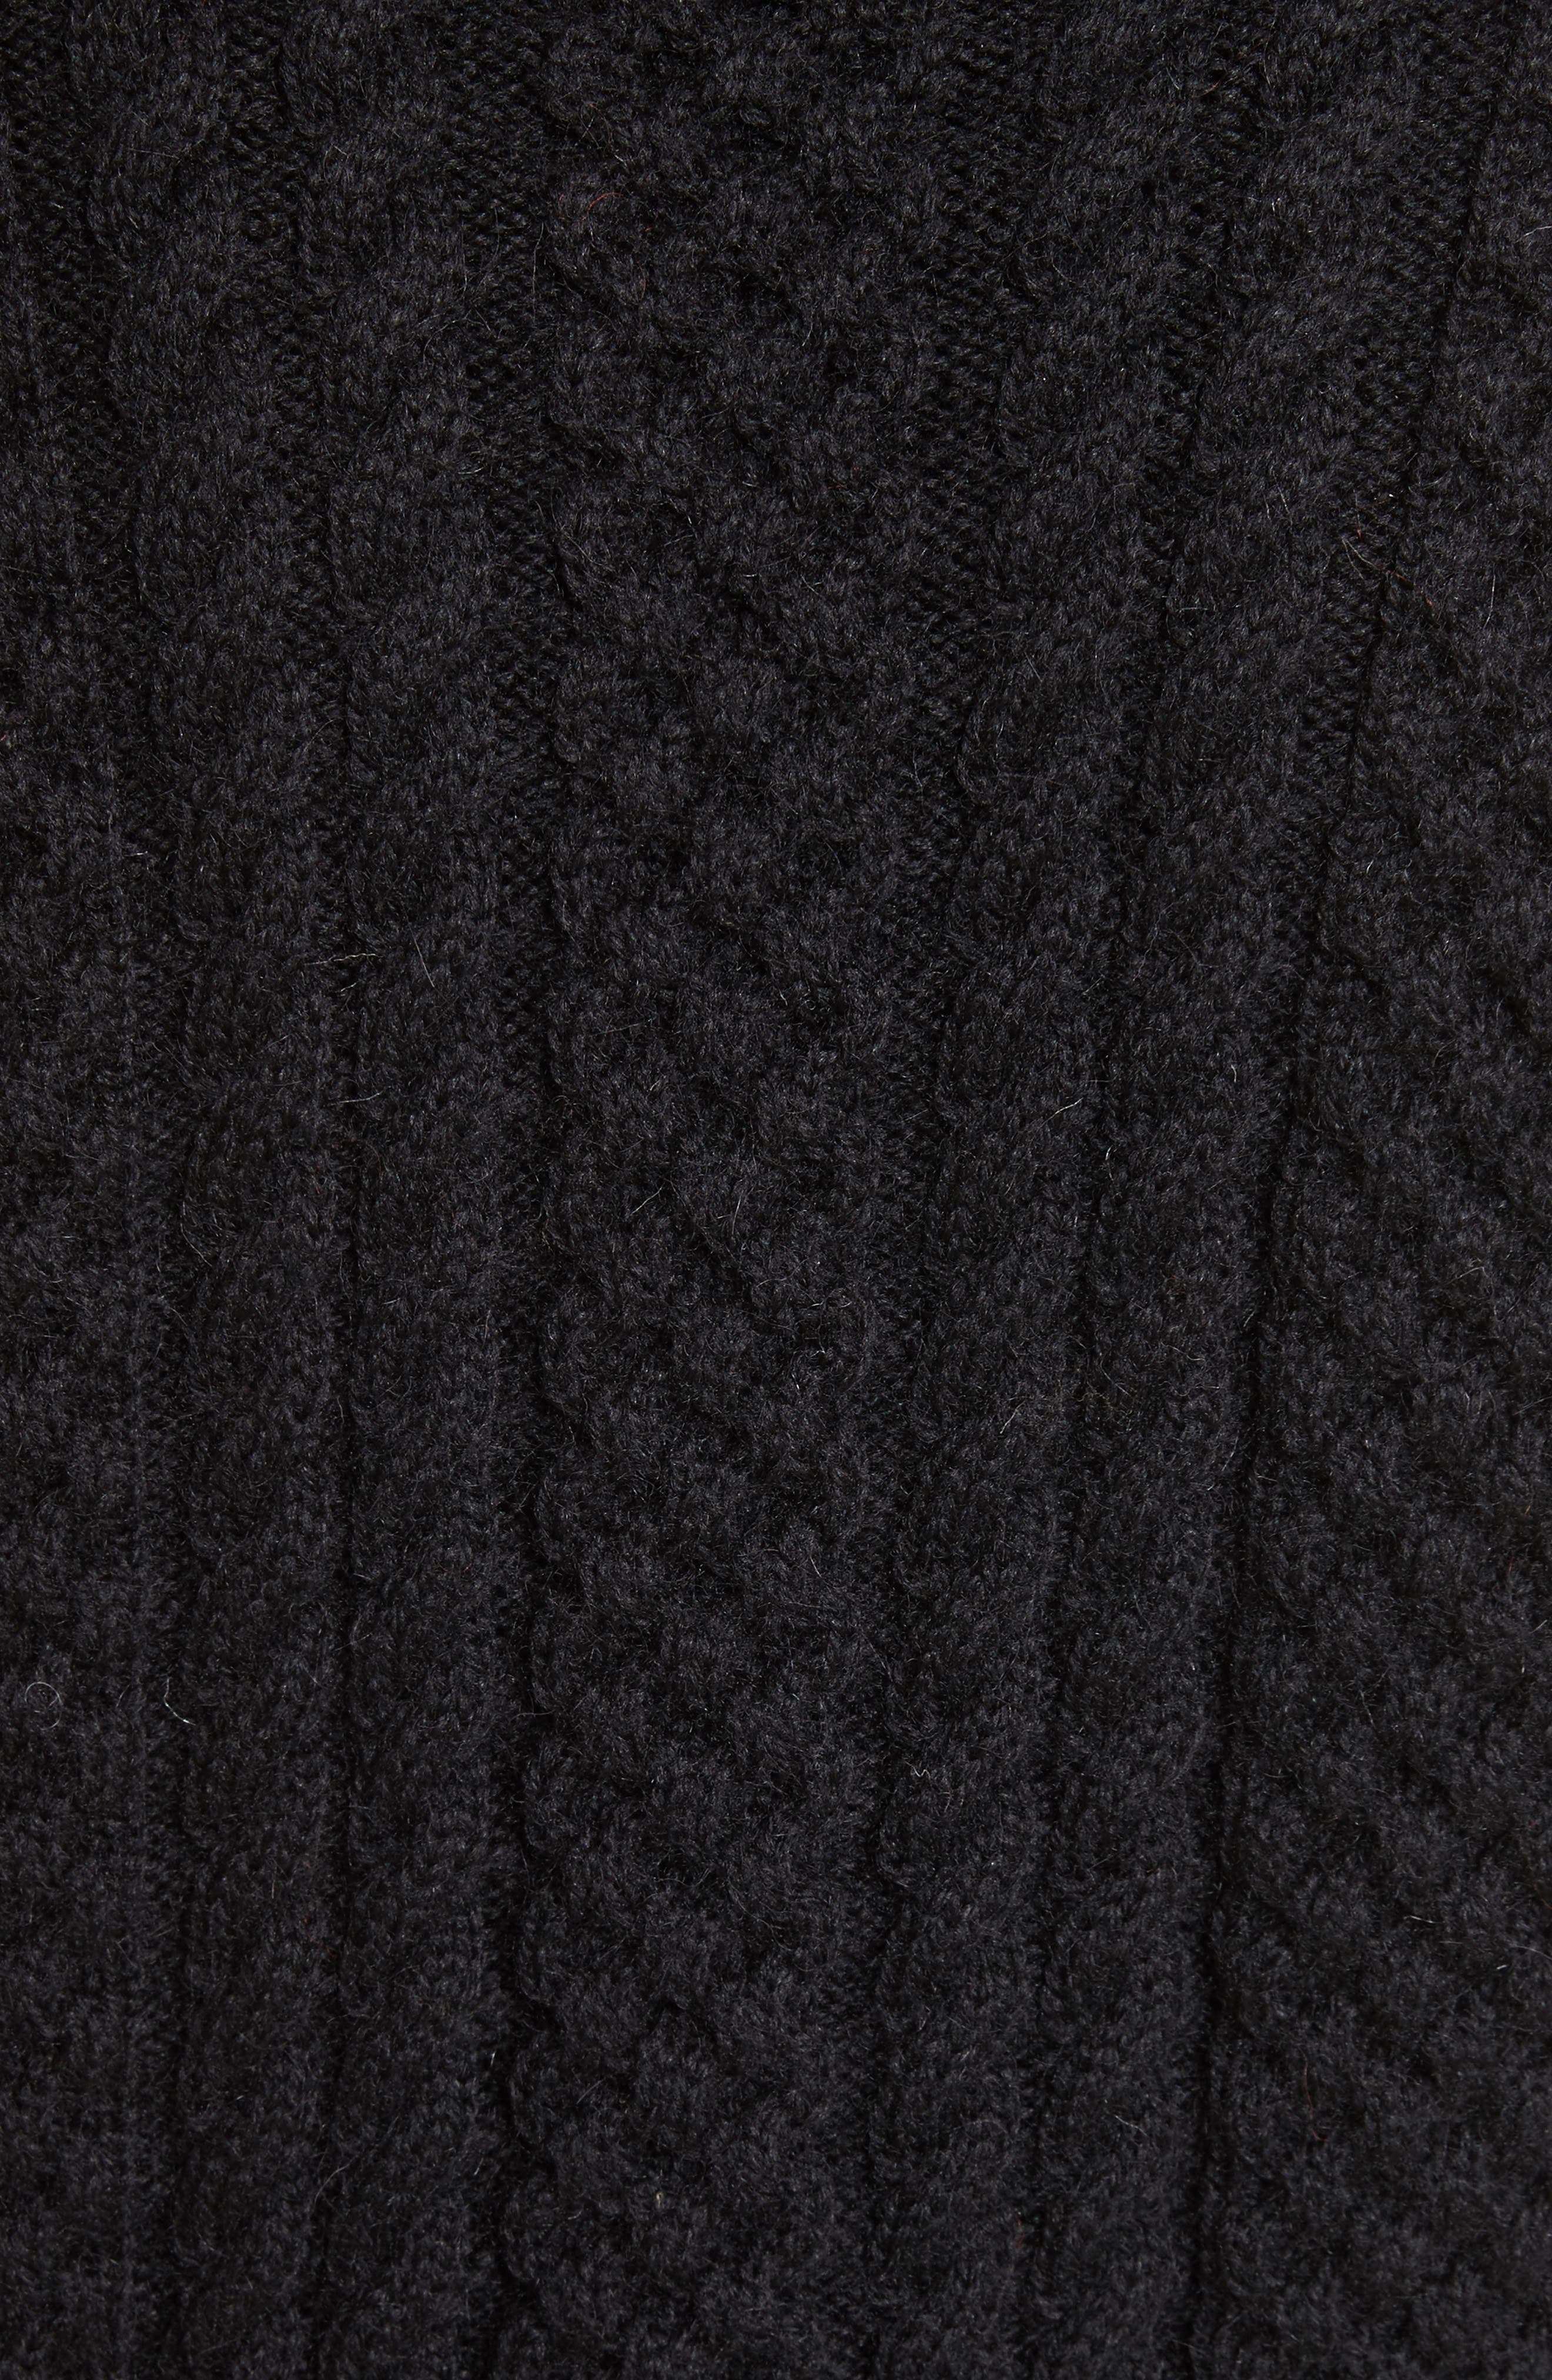 Cable Knit Wool Turtleneck Sweater,                             Alternate thumbnail 5, color,                             001